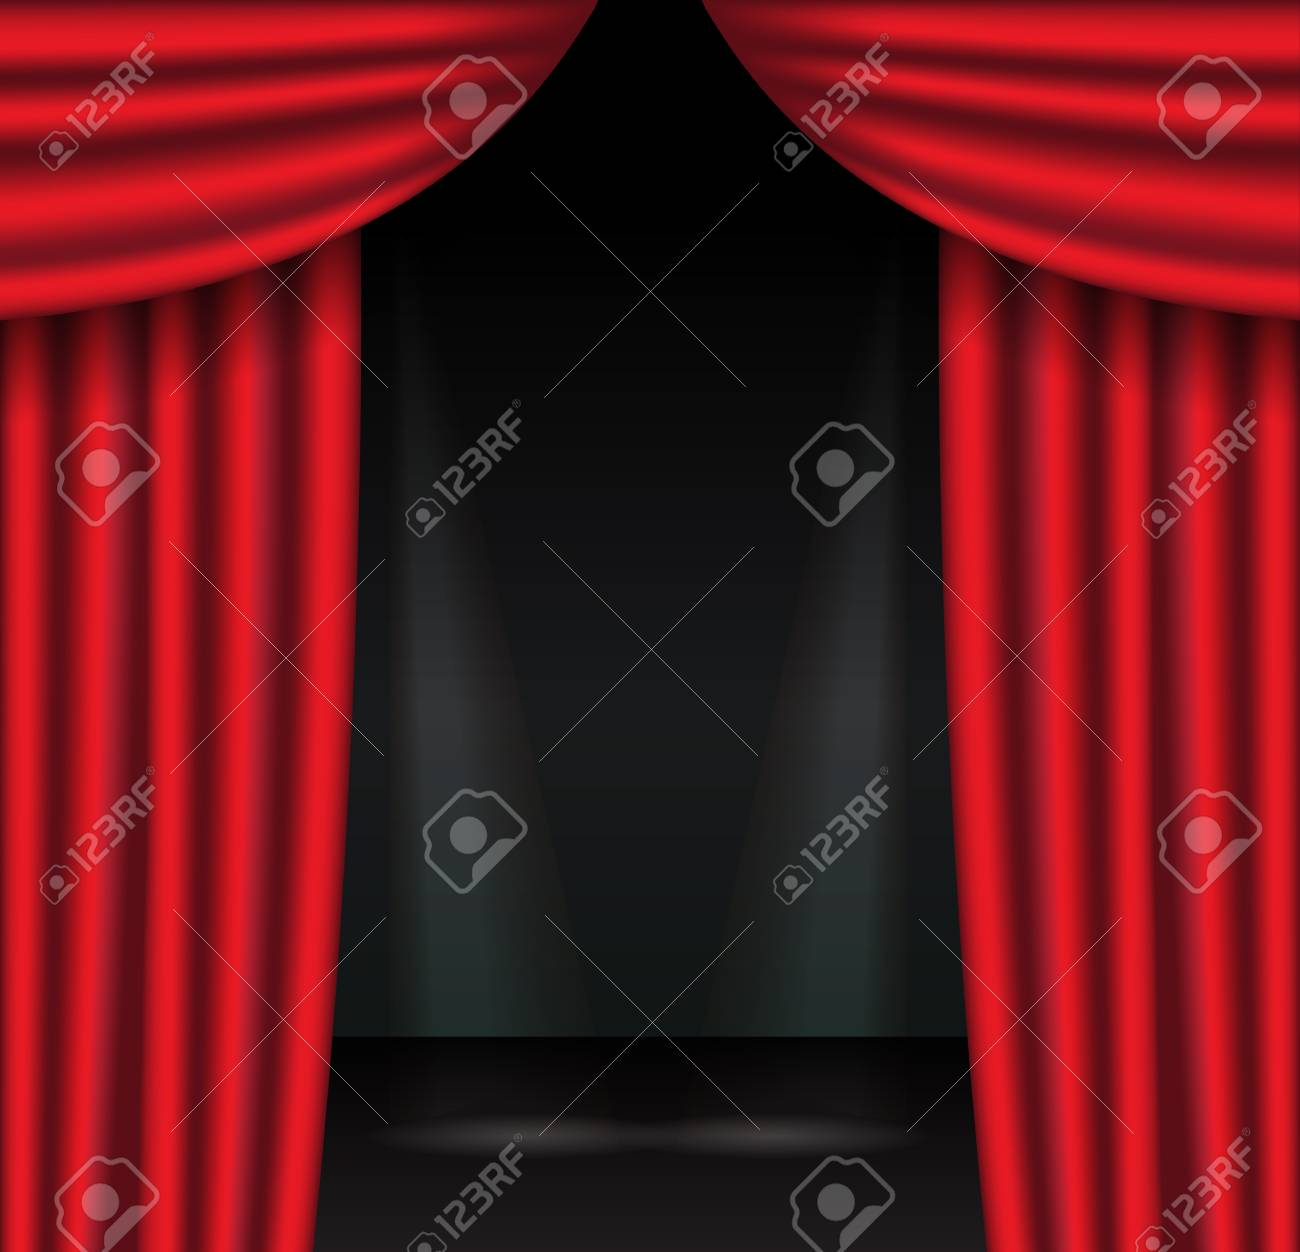 Red Theater Curtains With Spotlight Open Velvet Drapes Vector Illustration Stock